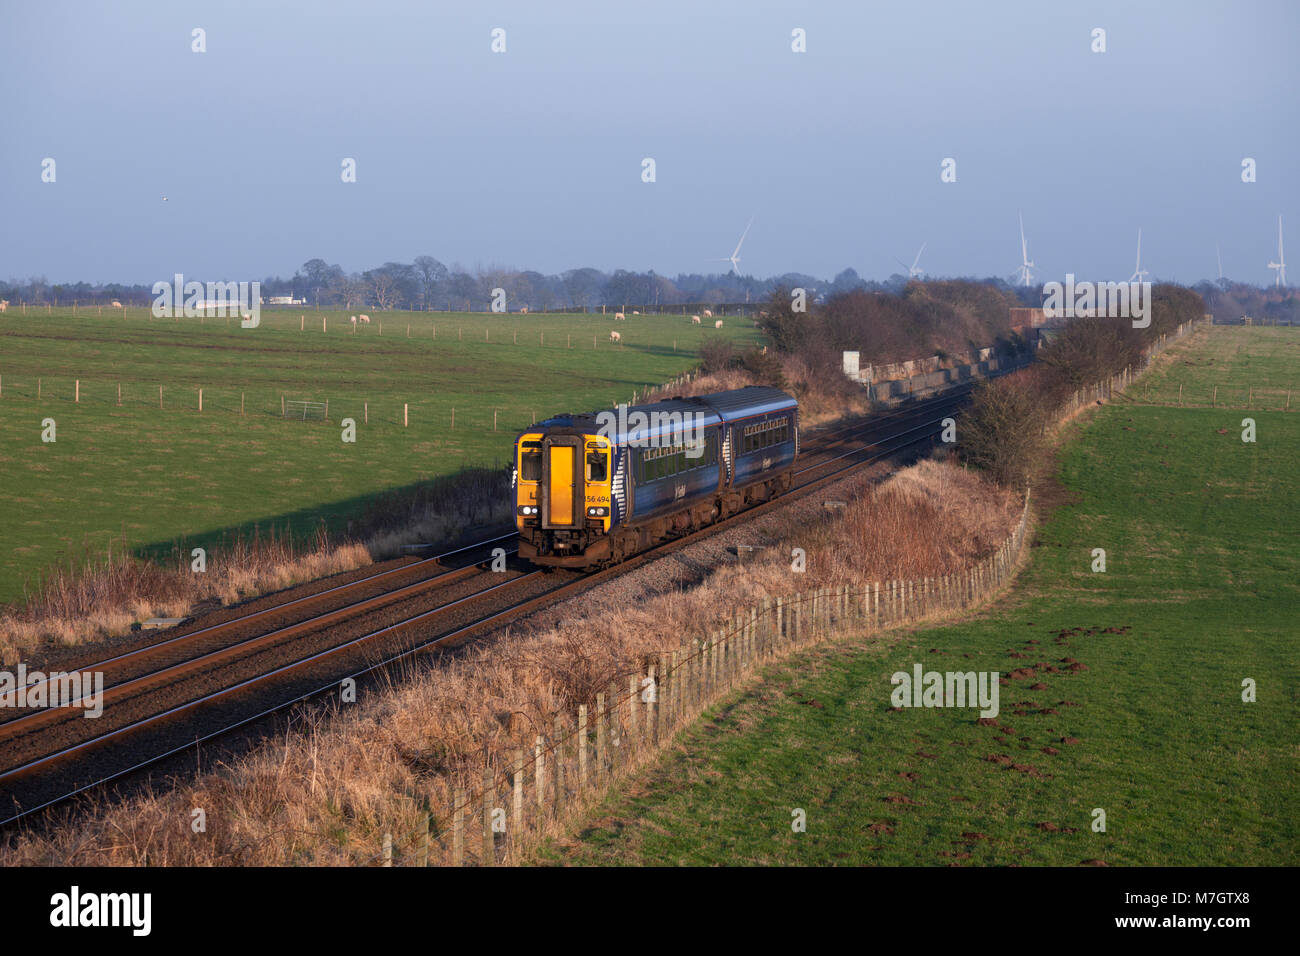 A Scotrail class 156 sprinter train passes Rigg (West of Gretna Green) with the 1323 Newcastle - Glasgow Central - Stock Image